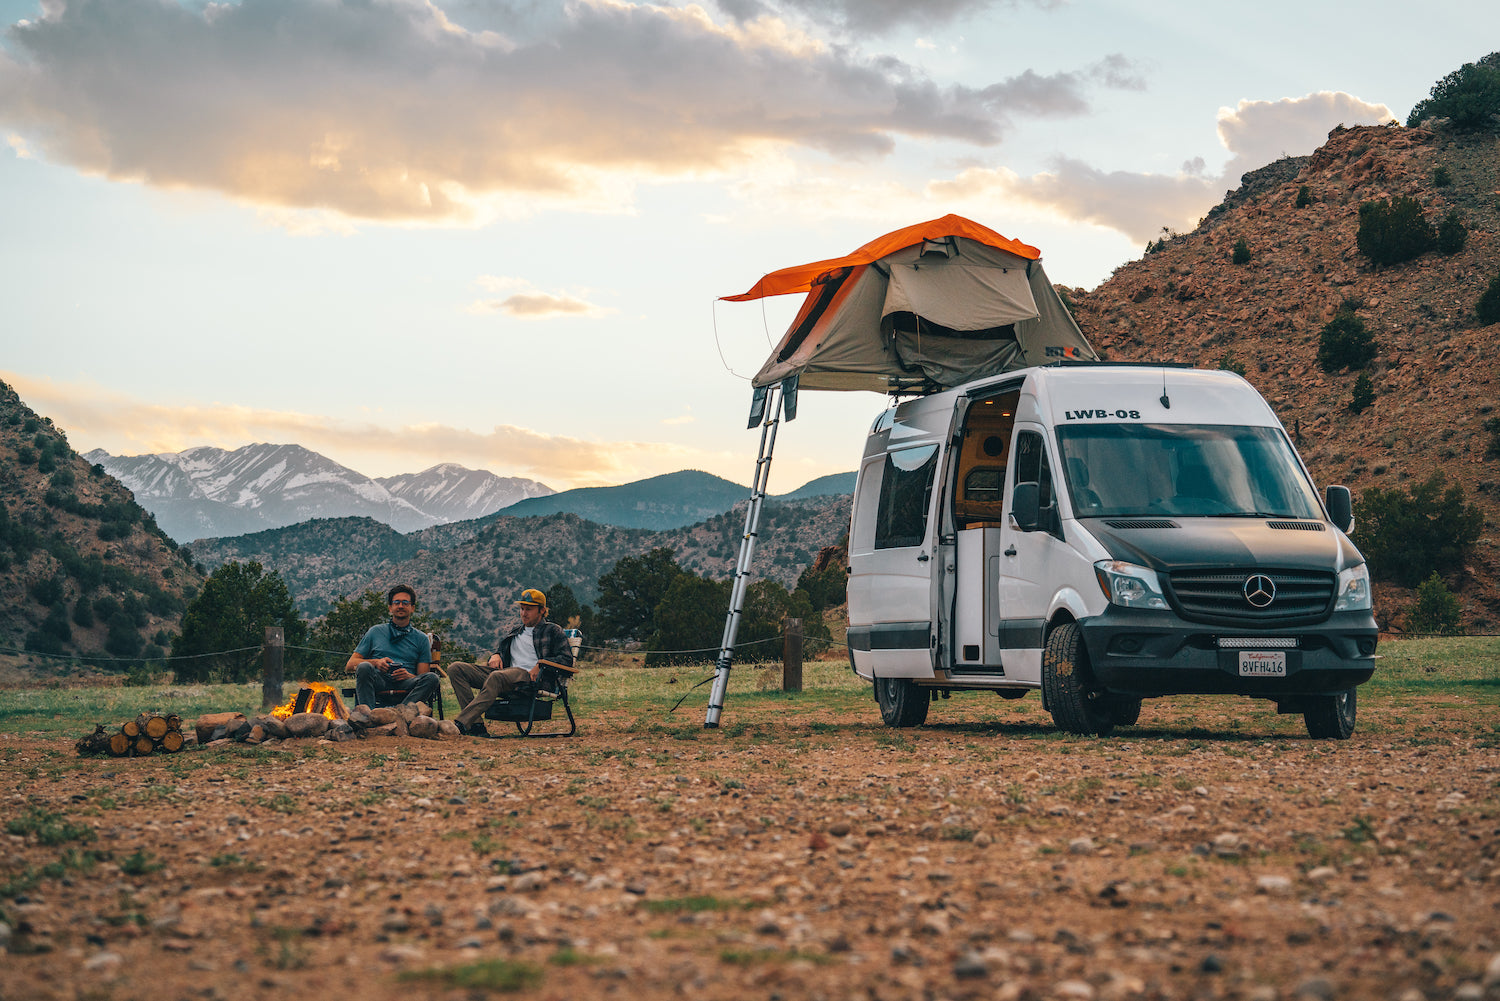 Two guys camping with Parkit chairs and a converted mercedes sprinter van